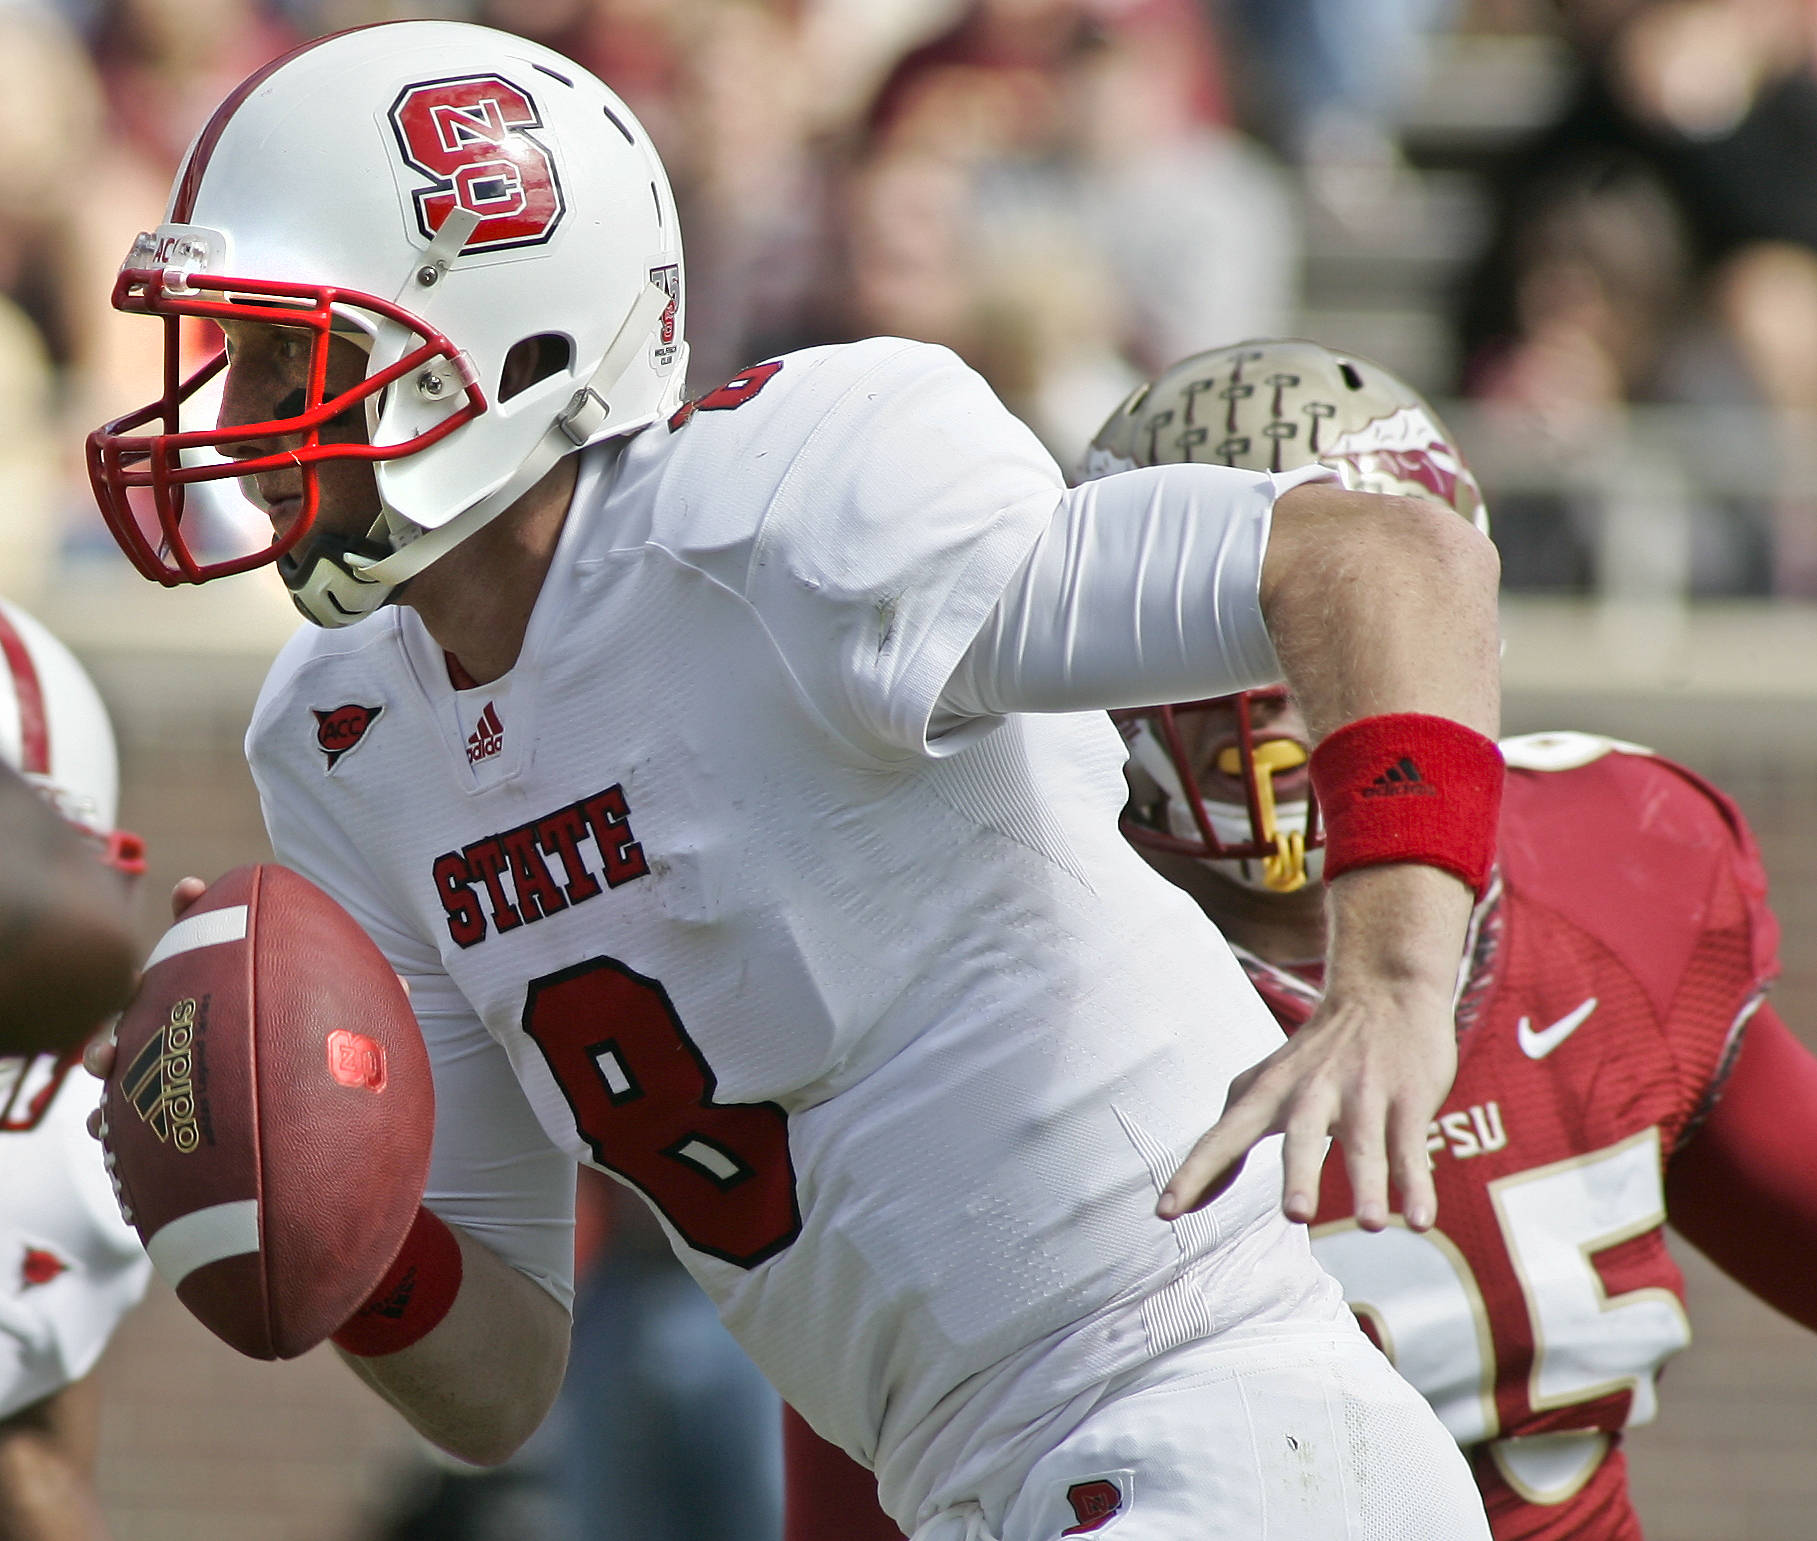 North Carolina State quarterback Mike Glennon (8) scrambles in the first quarter of an NCAA college football game against Florida State at Doak Campbell Stadium in Tallahassee, Fla., Saturday, Oct. 29, 2011. FSU won 34-0. (AP Photo/Phil Sears)